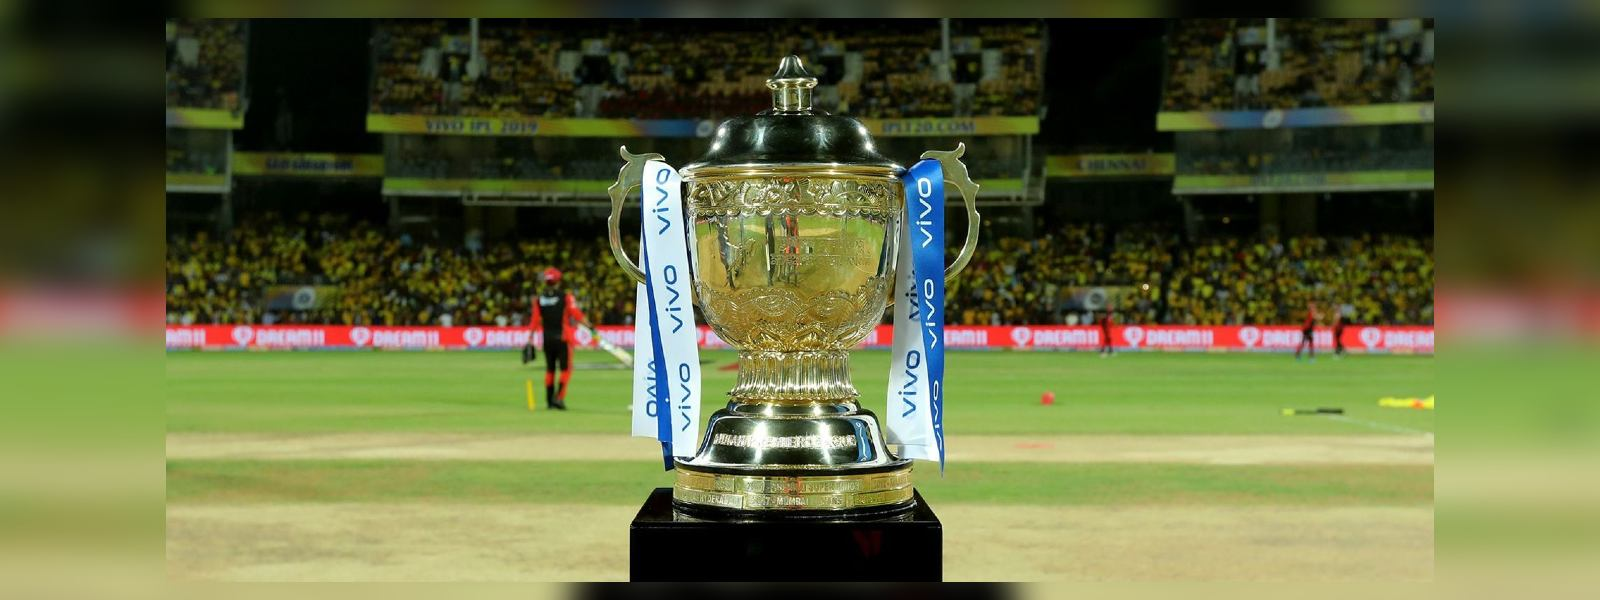 SLC grants permission for Dushmantha & Wanindu to participate in IPL